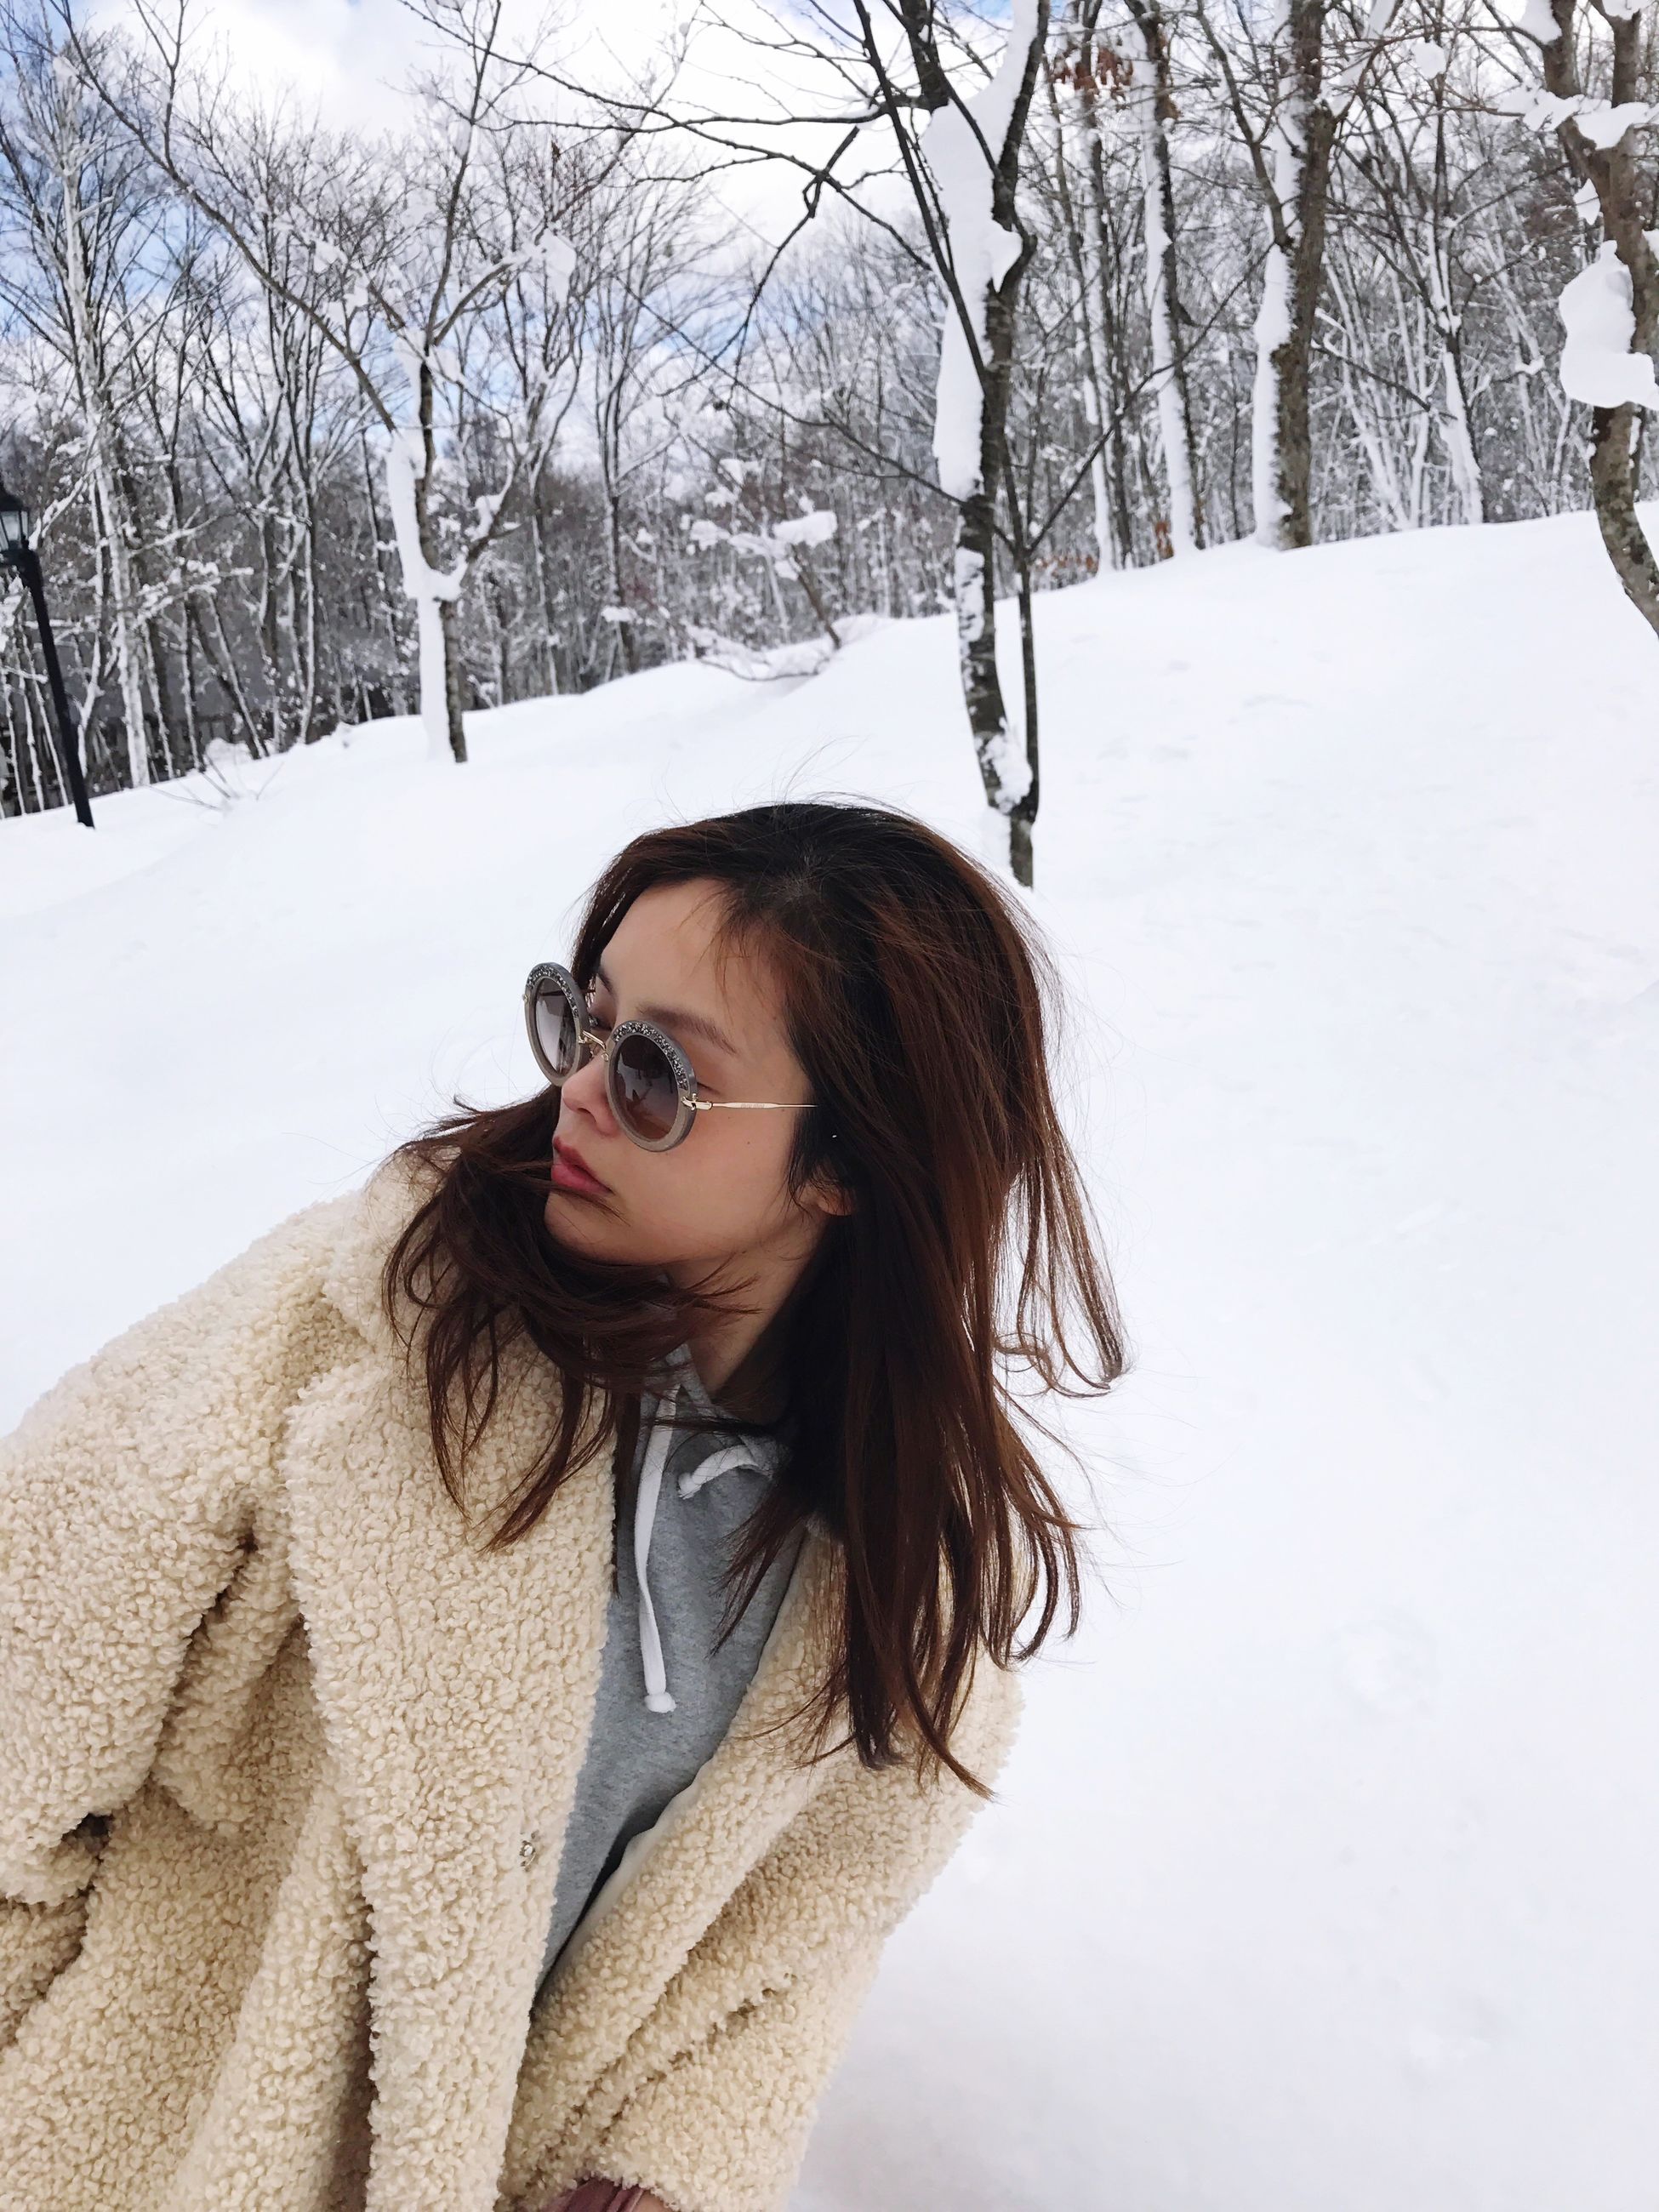 winter, young adult, cold temperature, sunglasses, looking at camera, portrait, snow, lifestyles, young women, one person, leisure activity, nature, warm clothing, one young woman only, one woman only, tree, outdoors, women, people, adult, vacations, day, real people, adults only, beautiful woman, only women, human body part